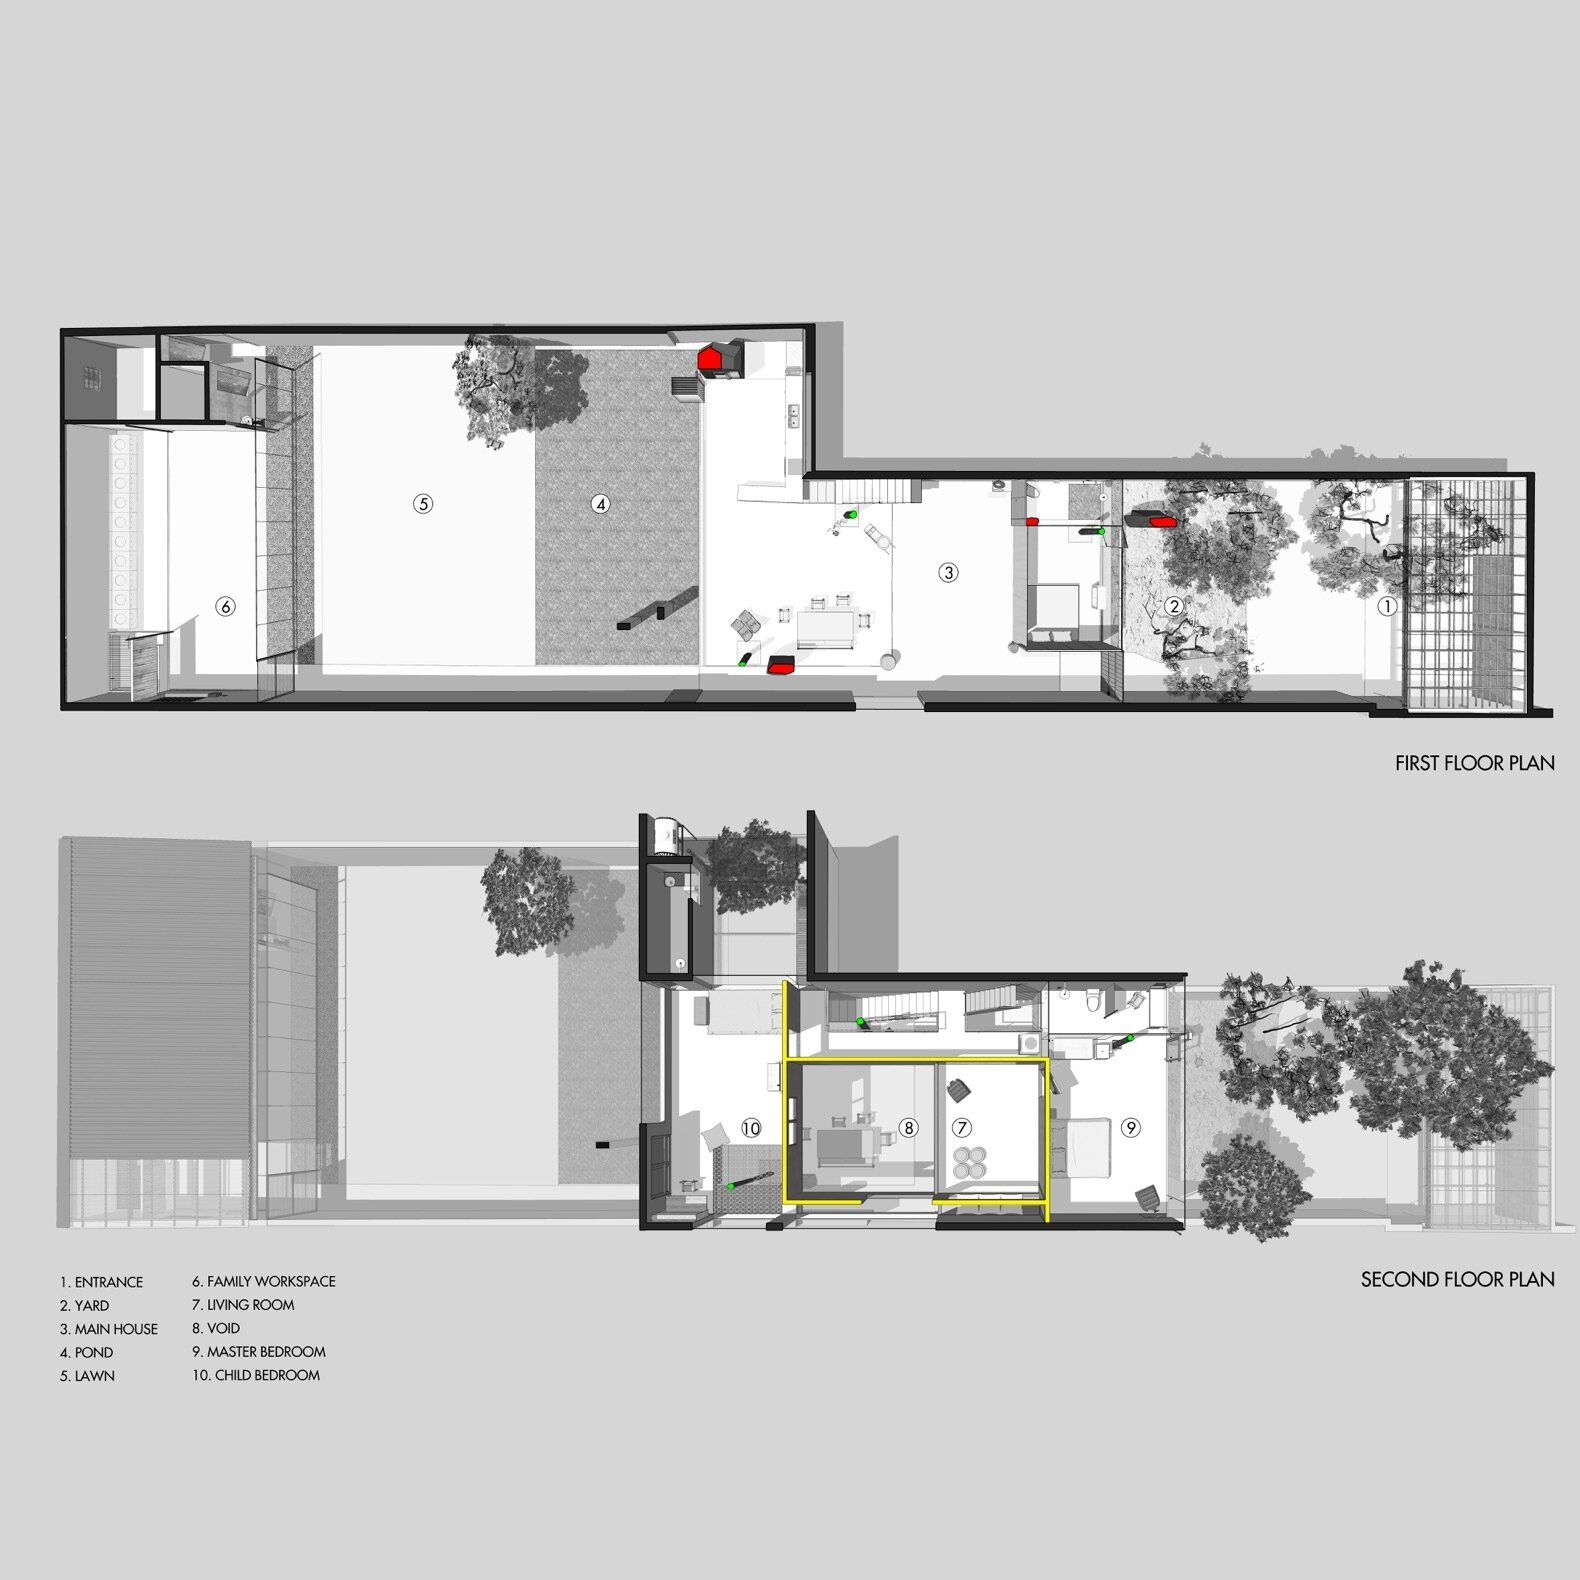 Da House first- and second-level floor plans